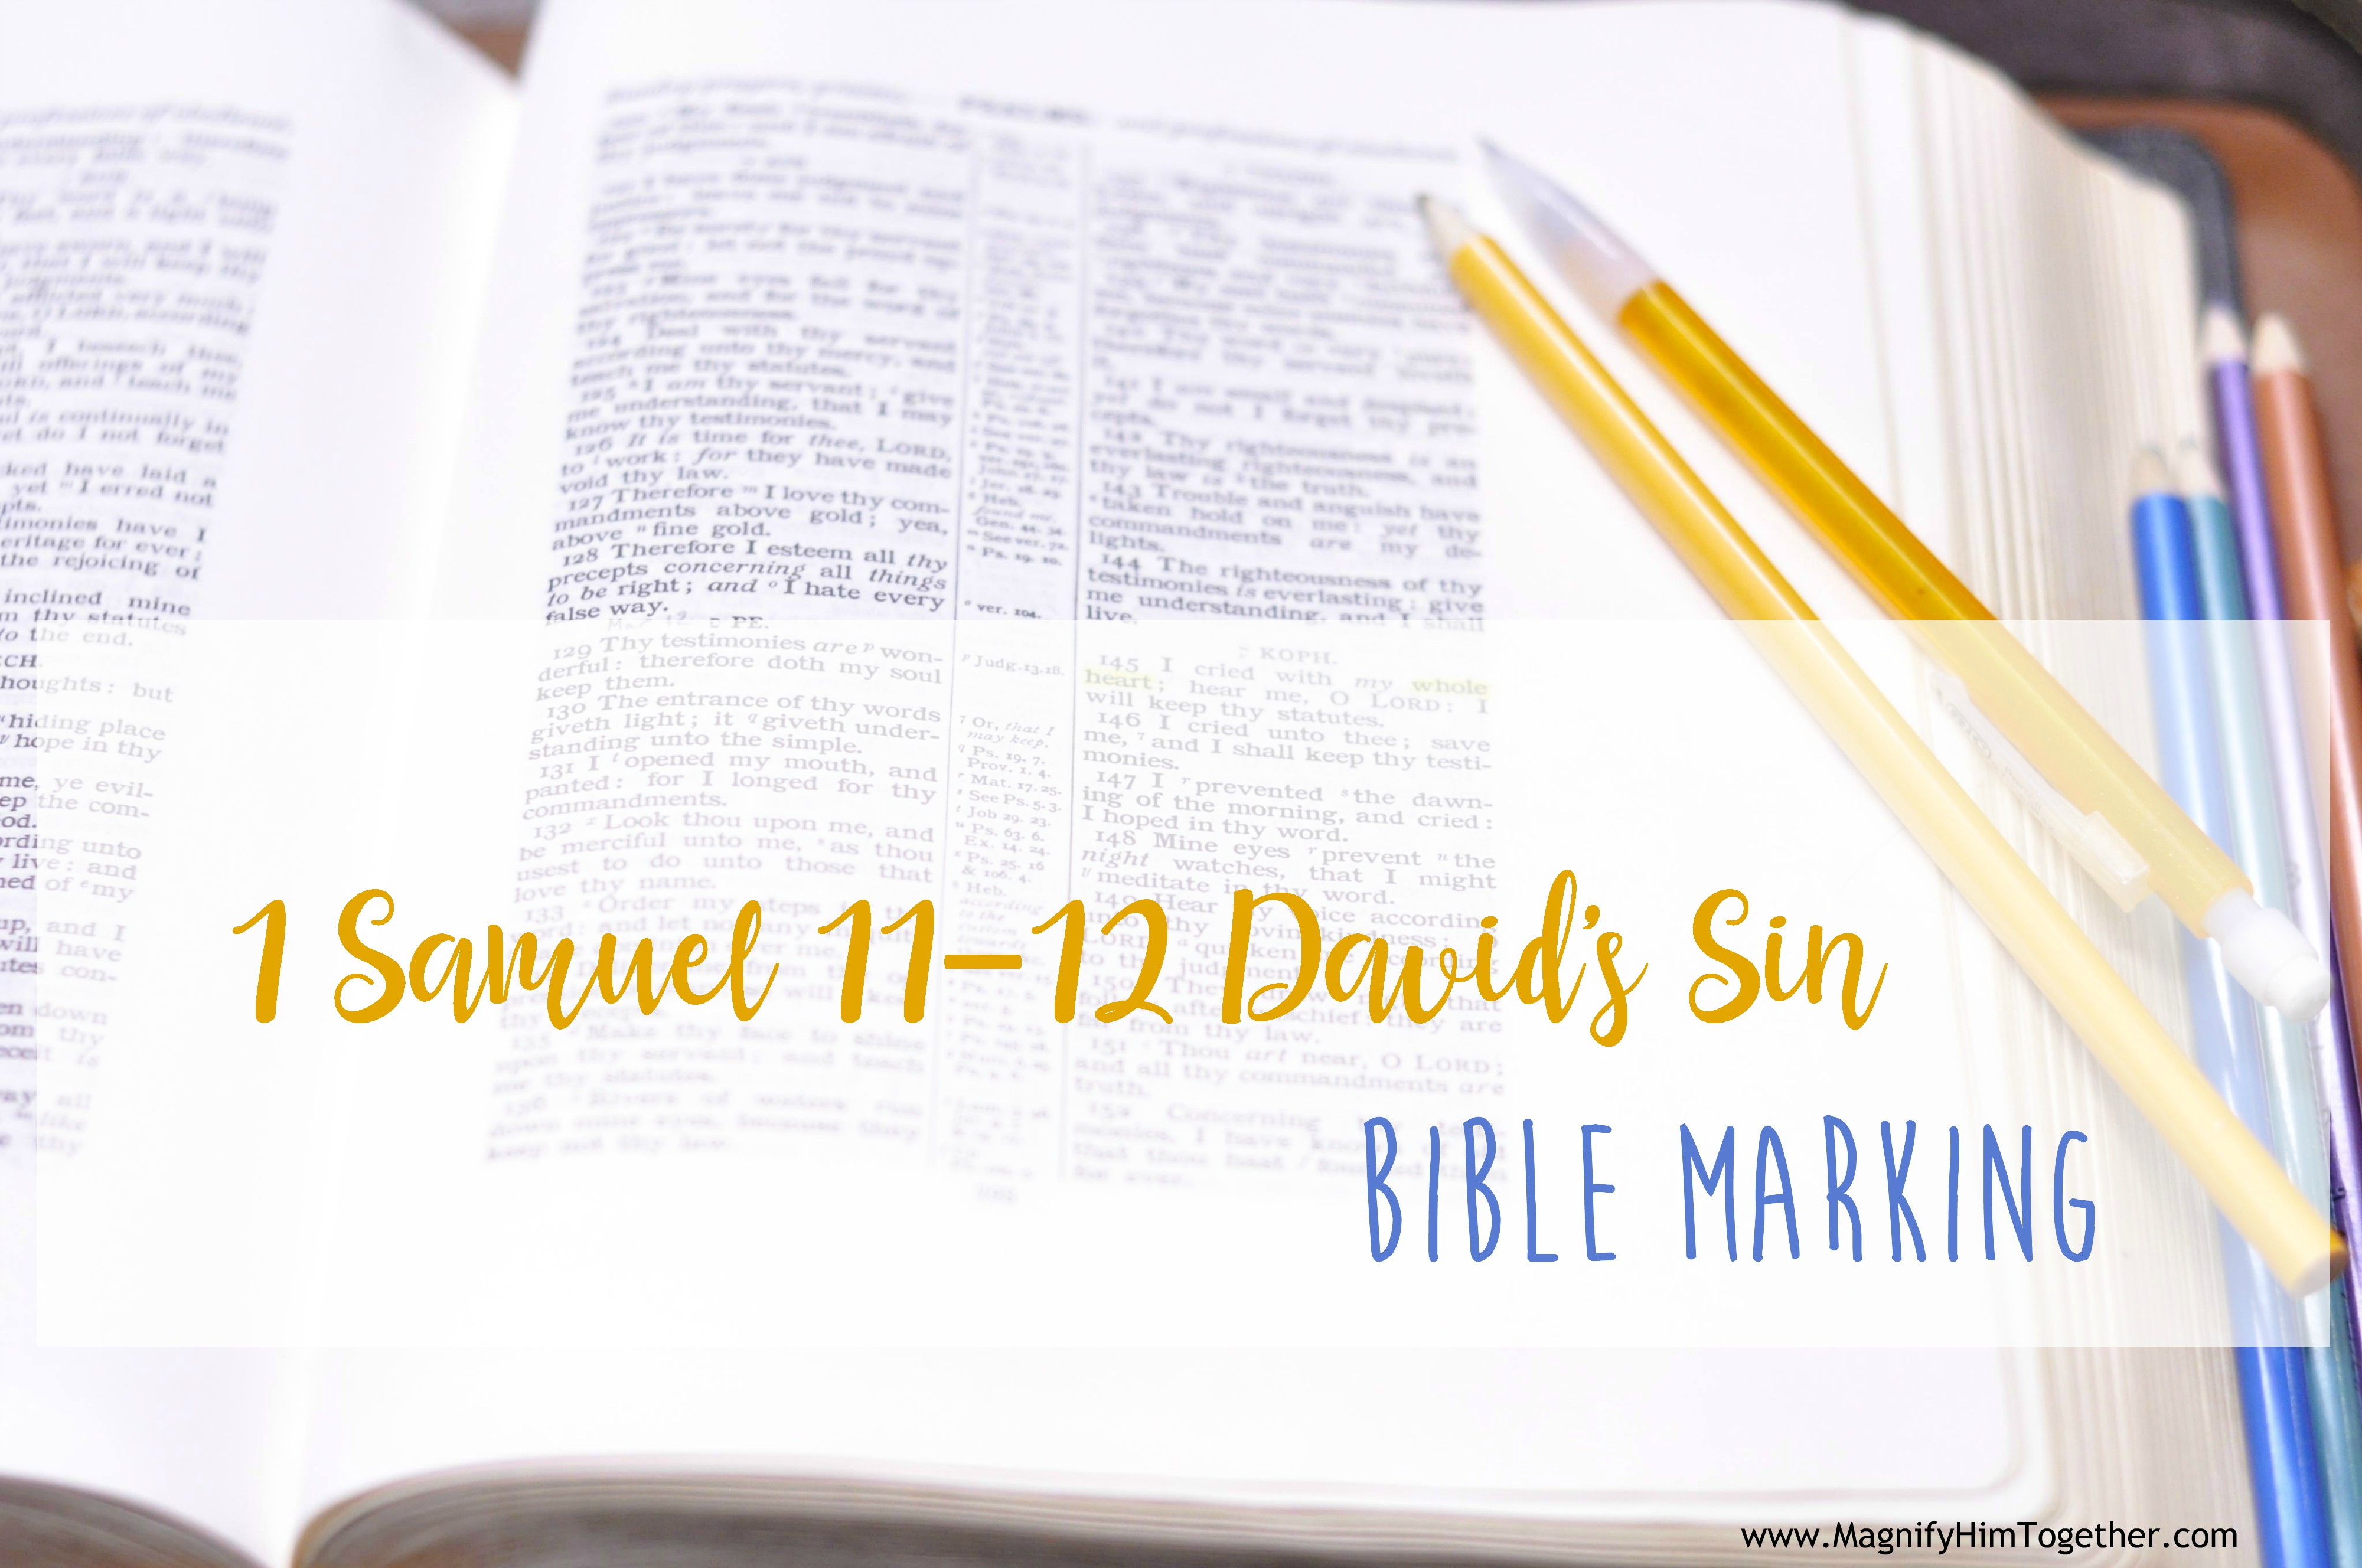 Bible Marking Notes David S Sin 2 Samuel 11 12